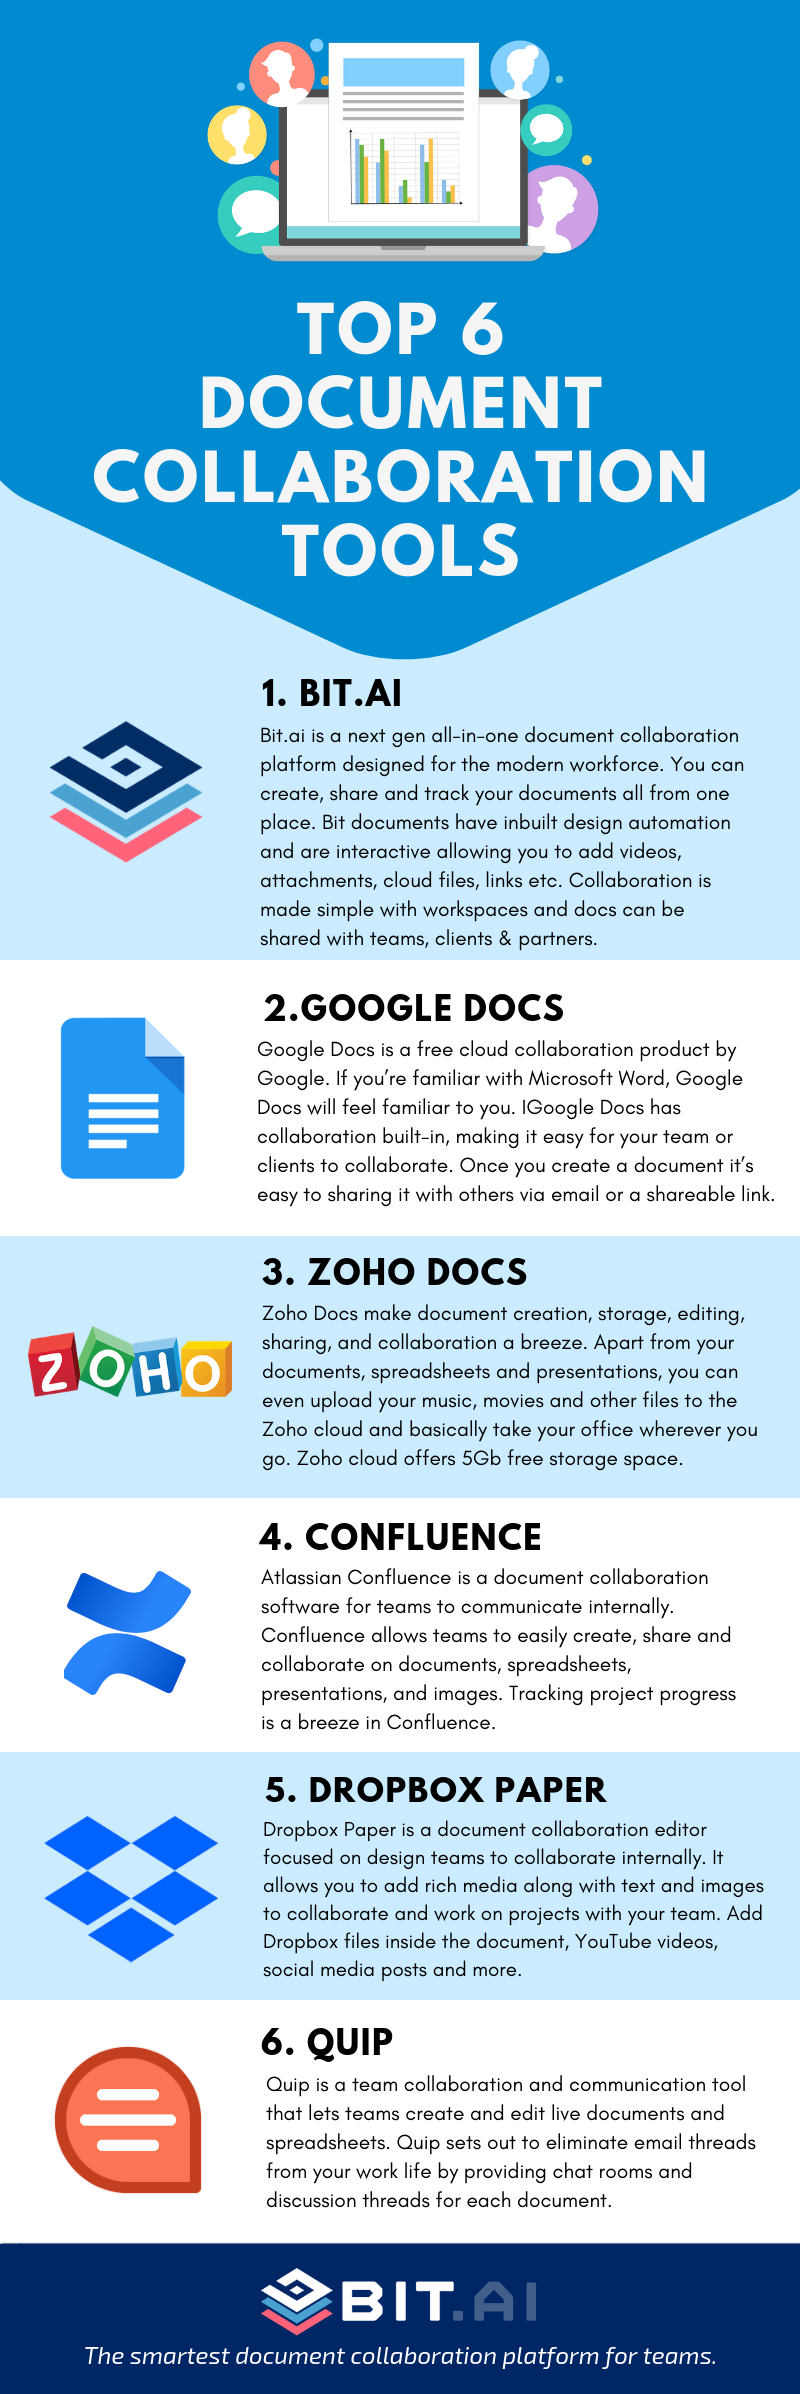 Top 6 Document Collaboration Tools 2018 (List Of Free & Paid)